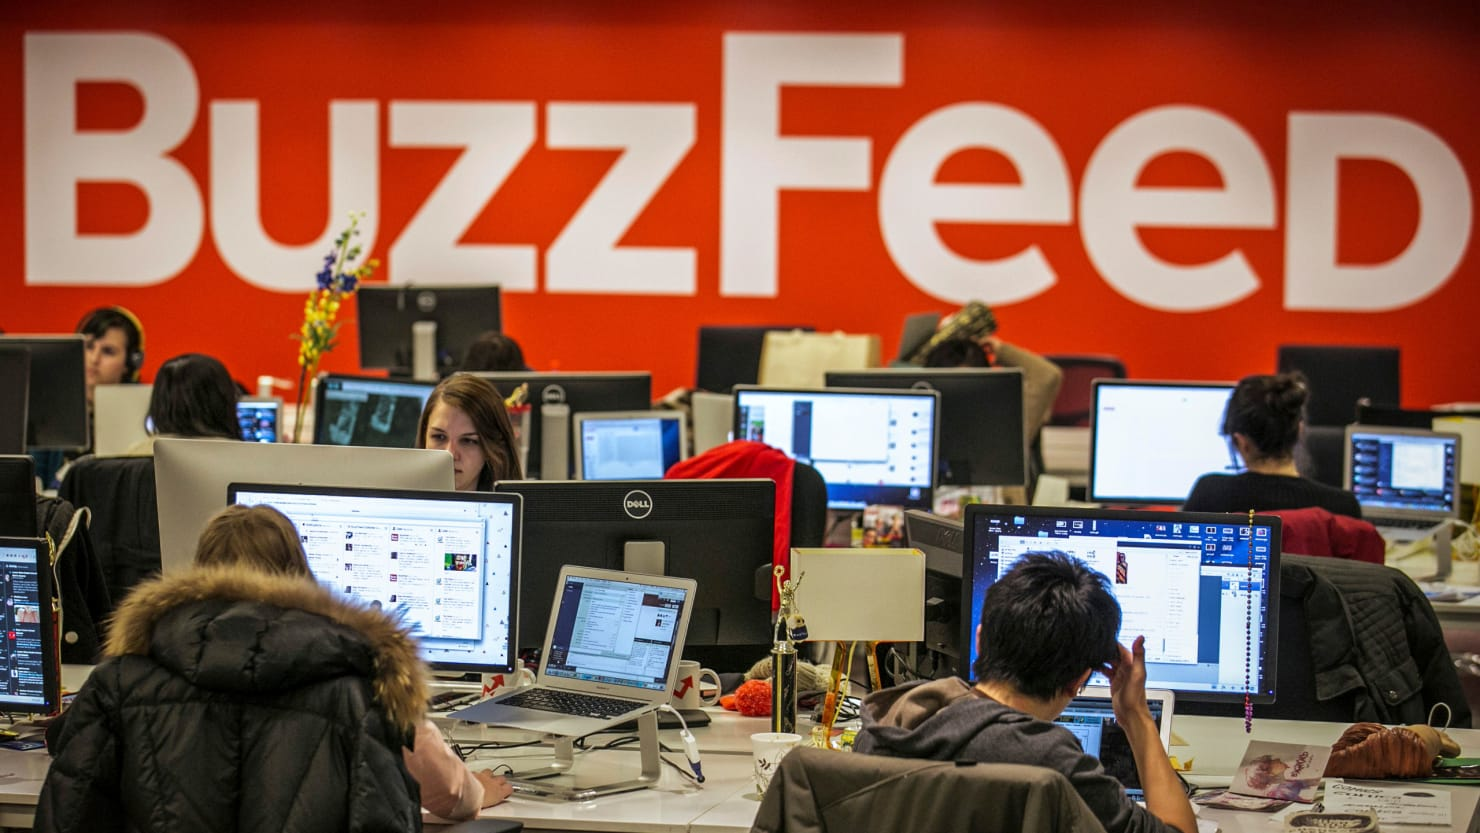 Unpaid Teen Who Created 700 Buzzfeed Quizzes Stops After Learning Of Layoffs